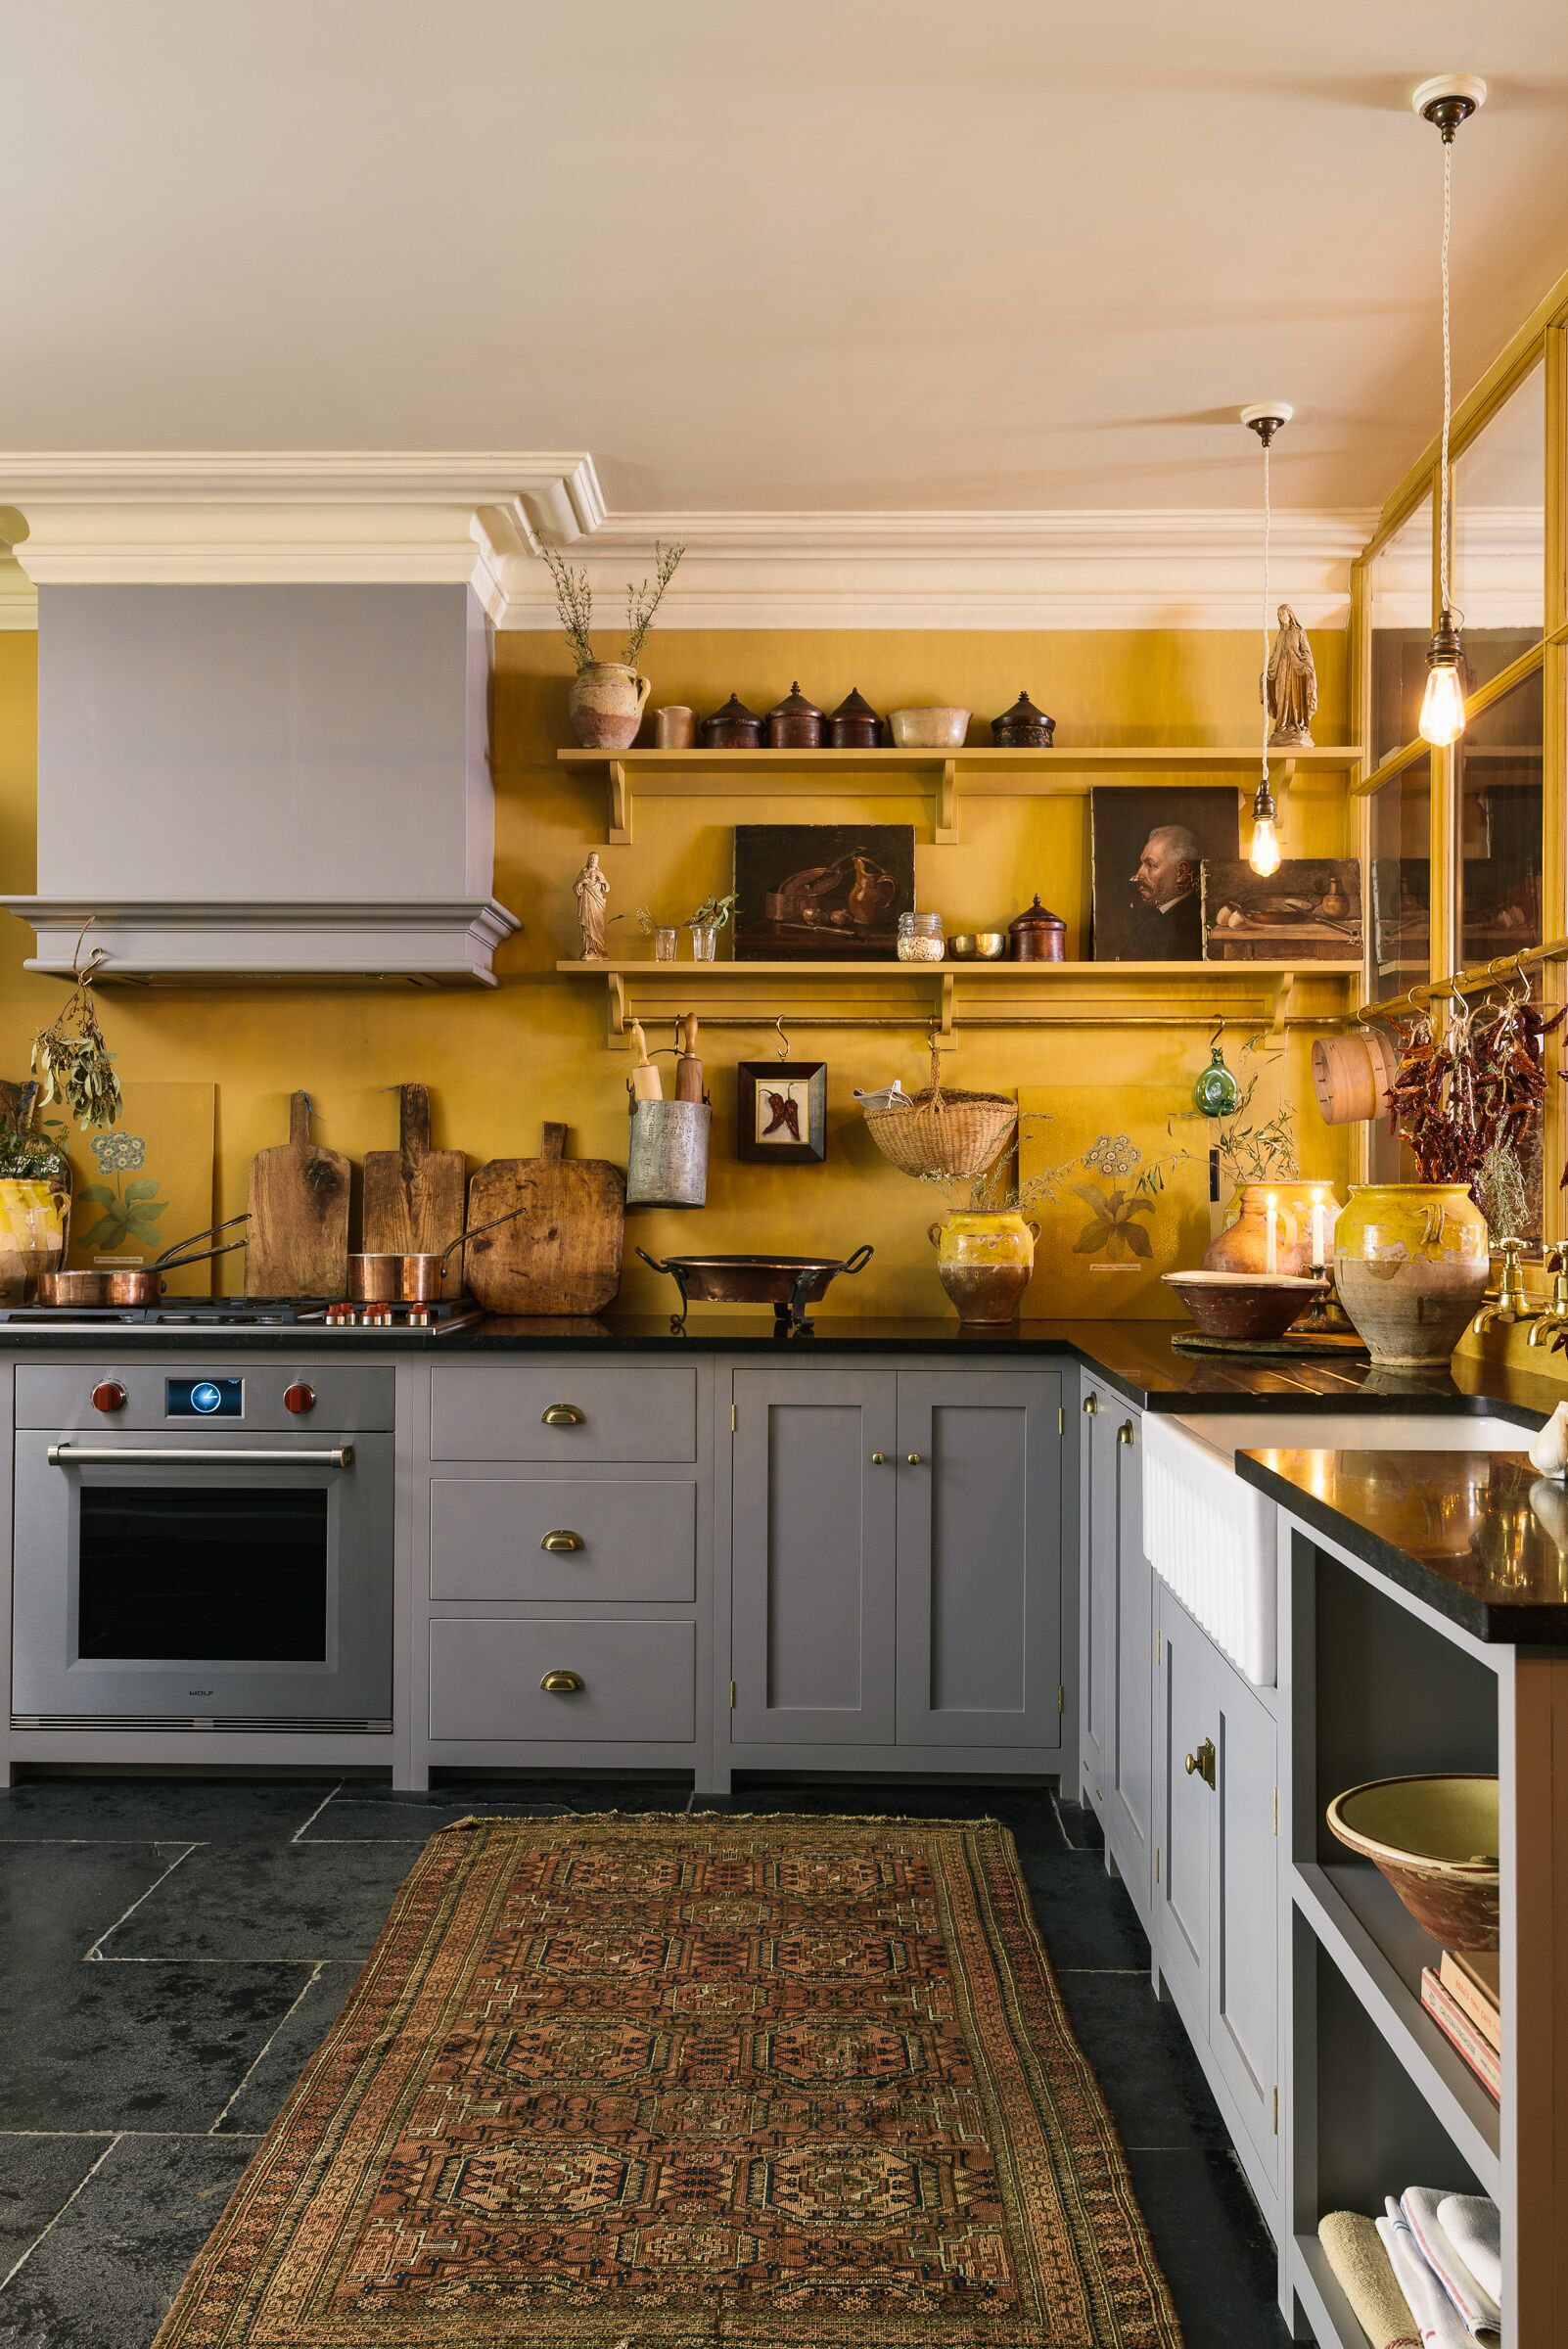 The Nordroom - The Real Shaker Kitchen by deVOL